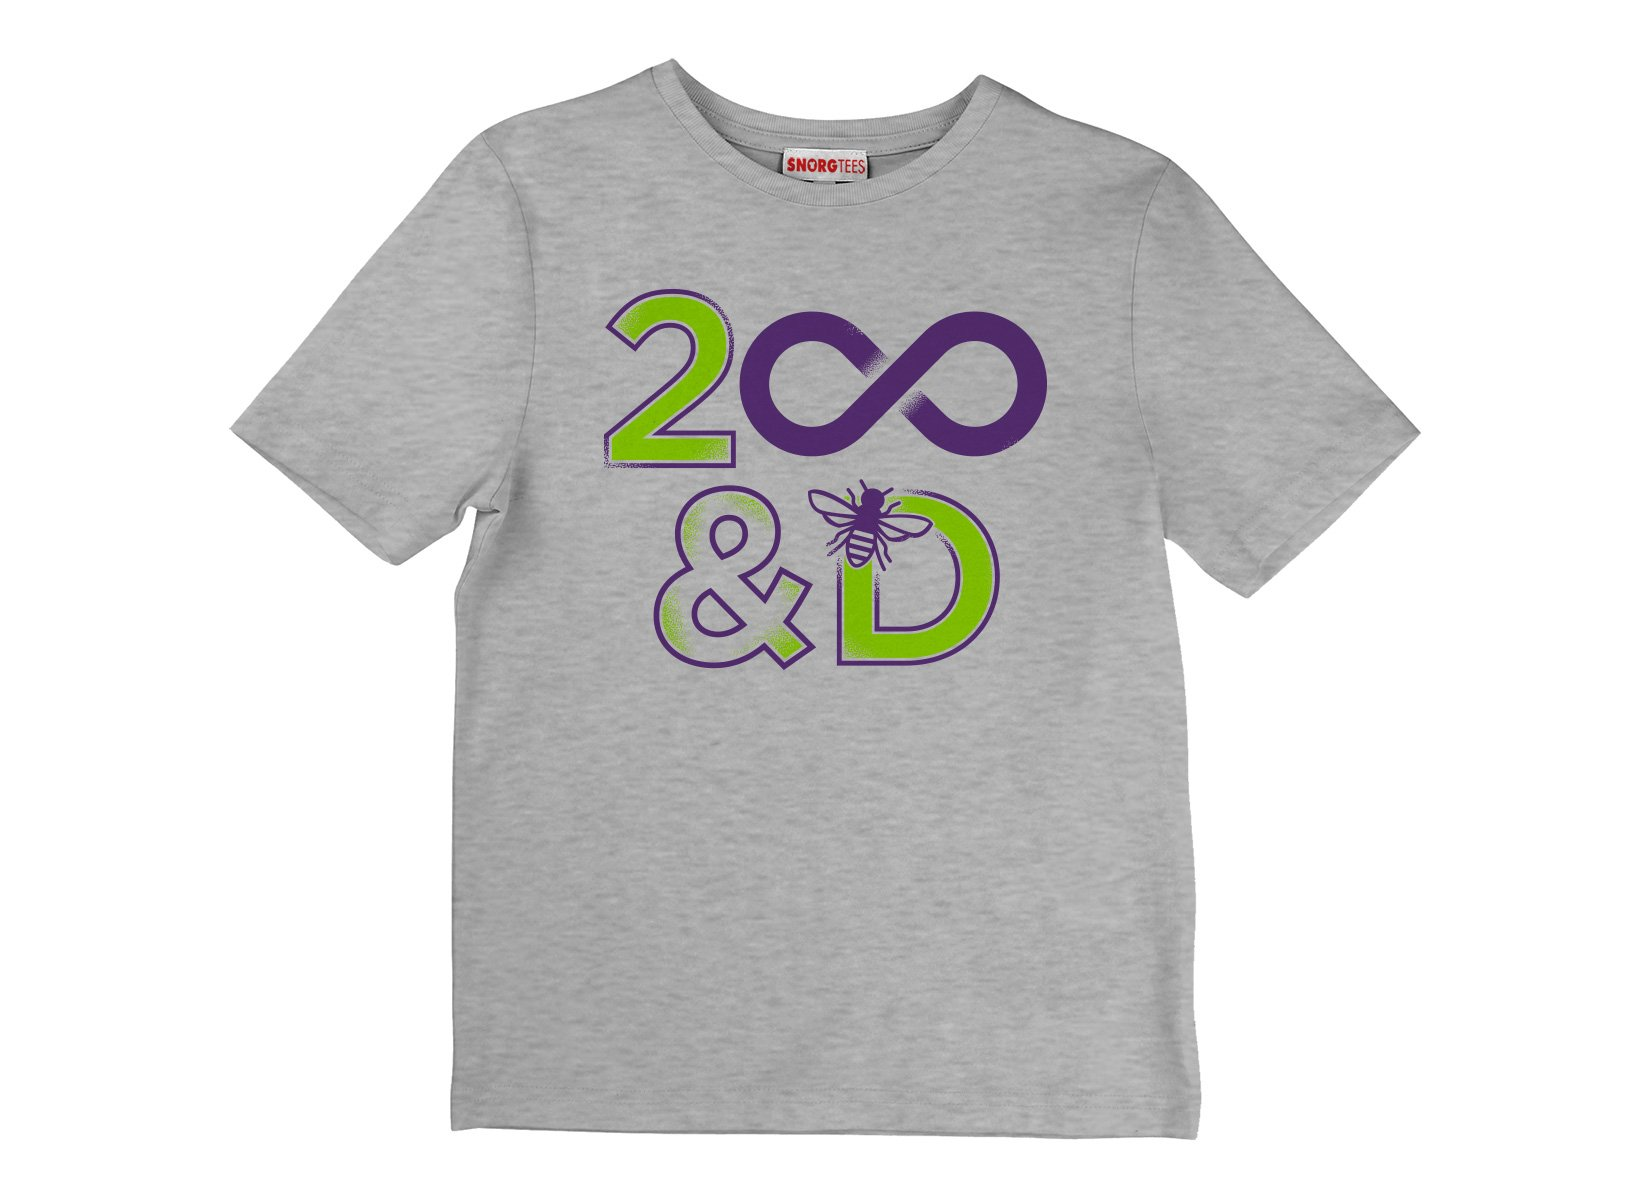 2 Infinity And B On D on Kids T-Shirt